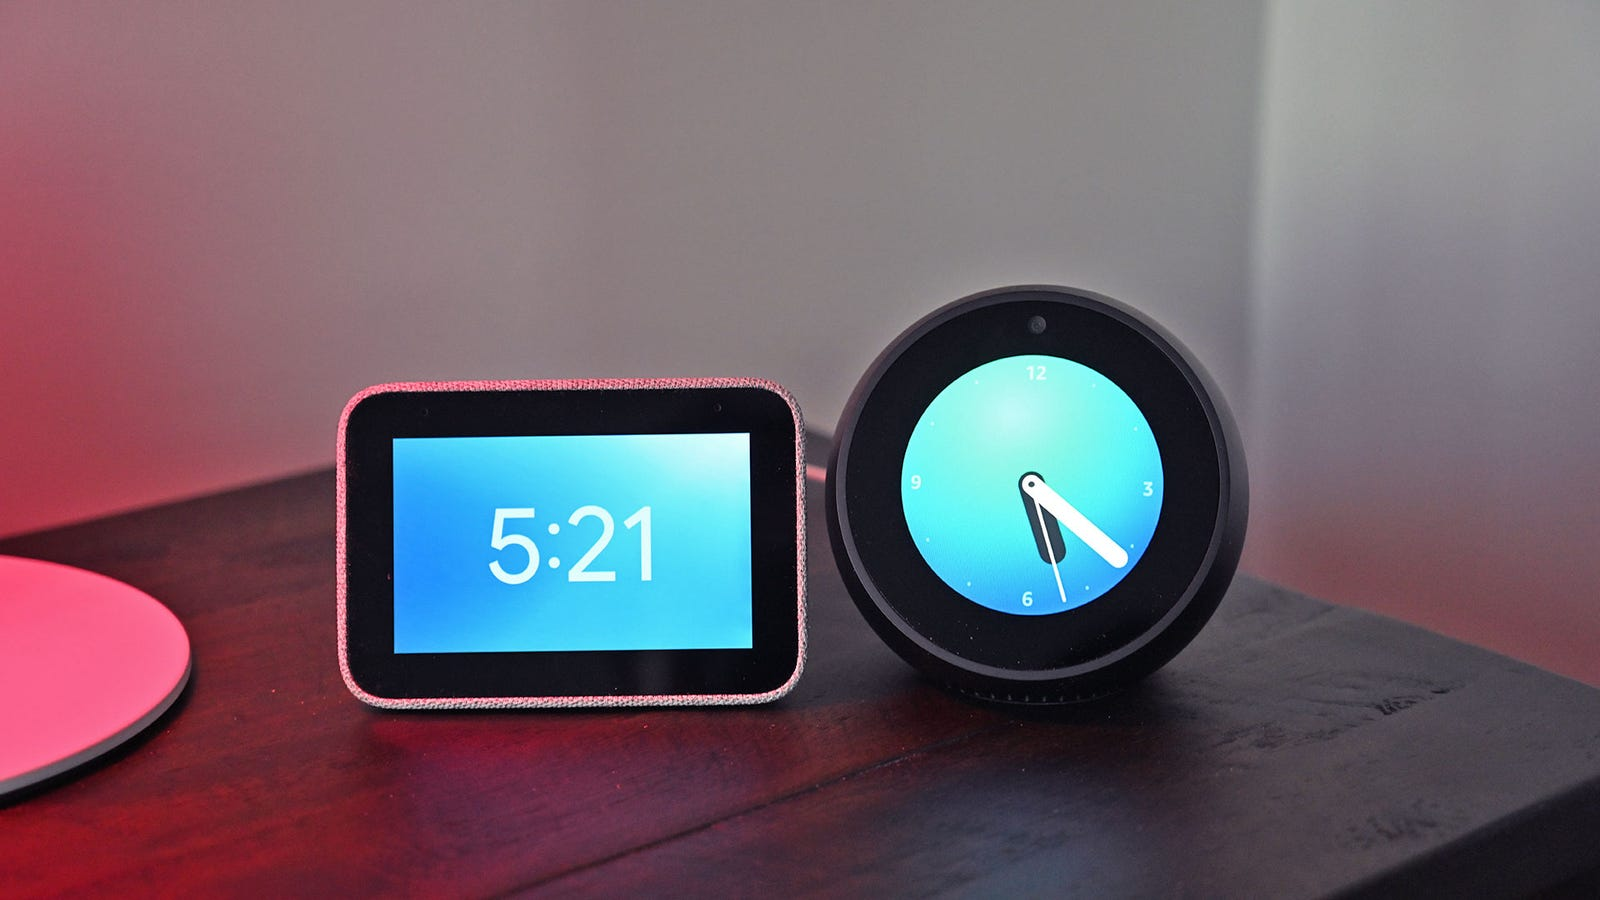 Lenovo's Smart Clock is the closest thing to an Echo Spot competitor for people already invested in the Google Home ecosystem.